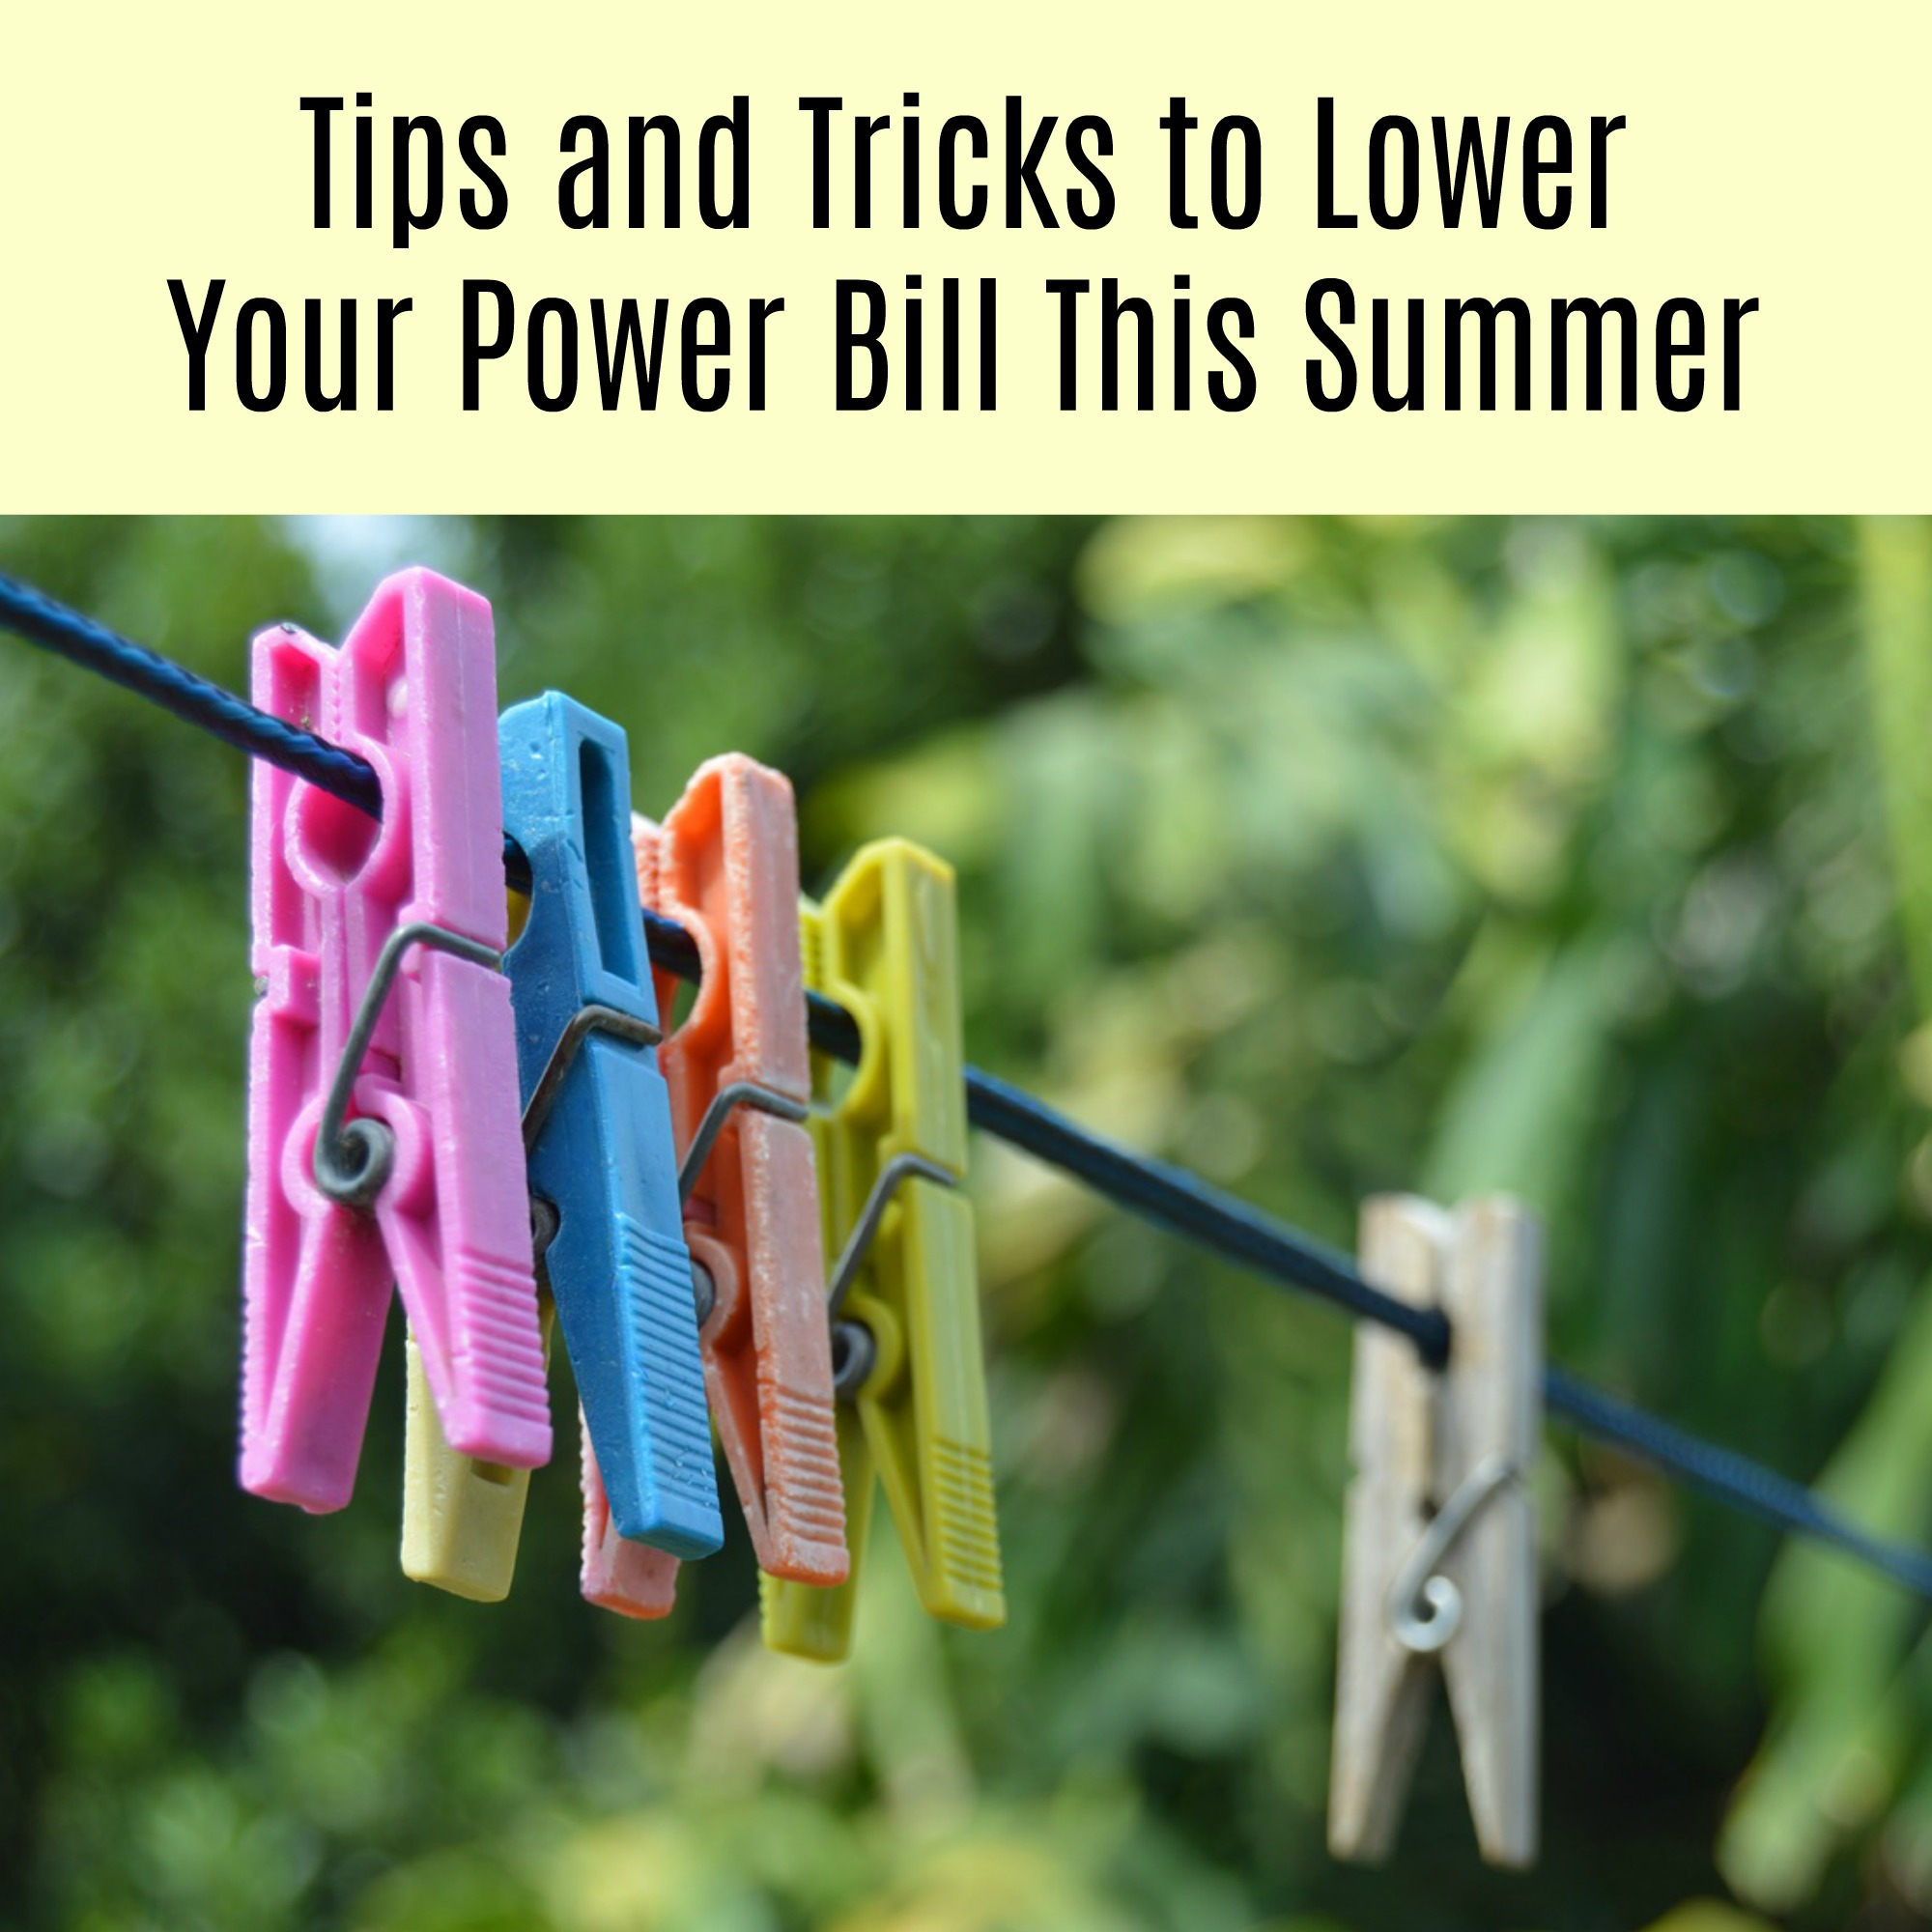 Tips and Tricks to Lower Your Power Bill This Summer